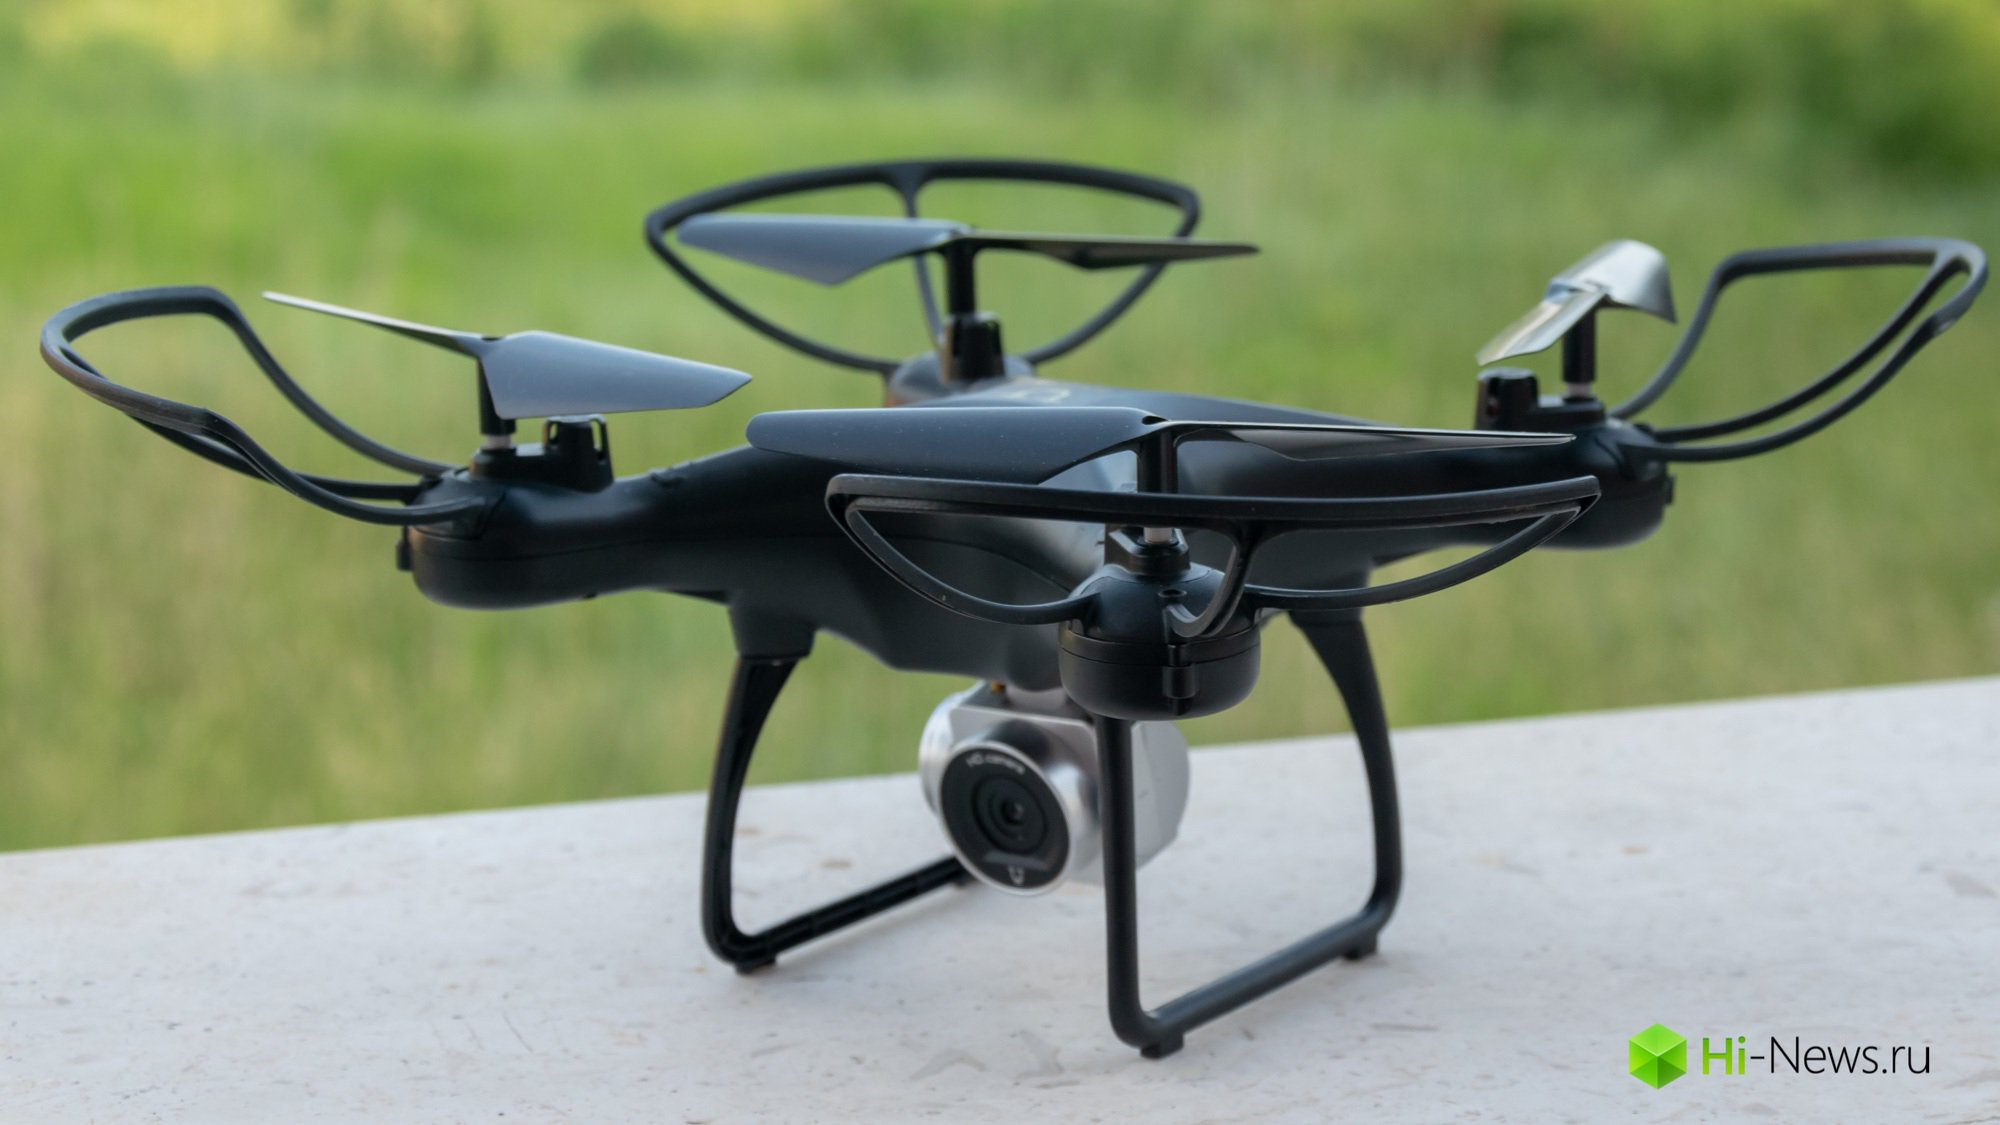 Browse quadcopter Utoghter 69601 — an inexpensive option for beginners